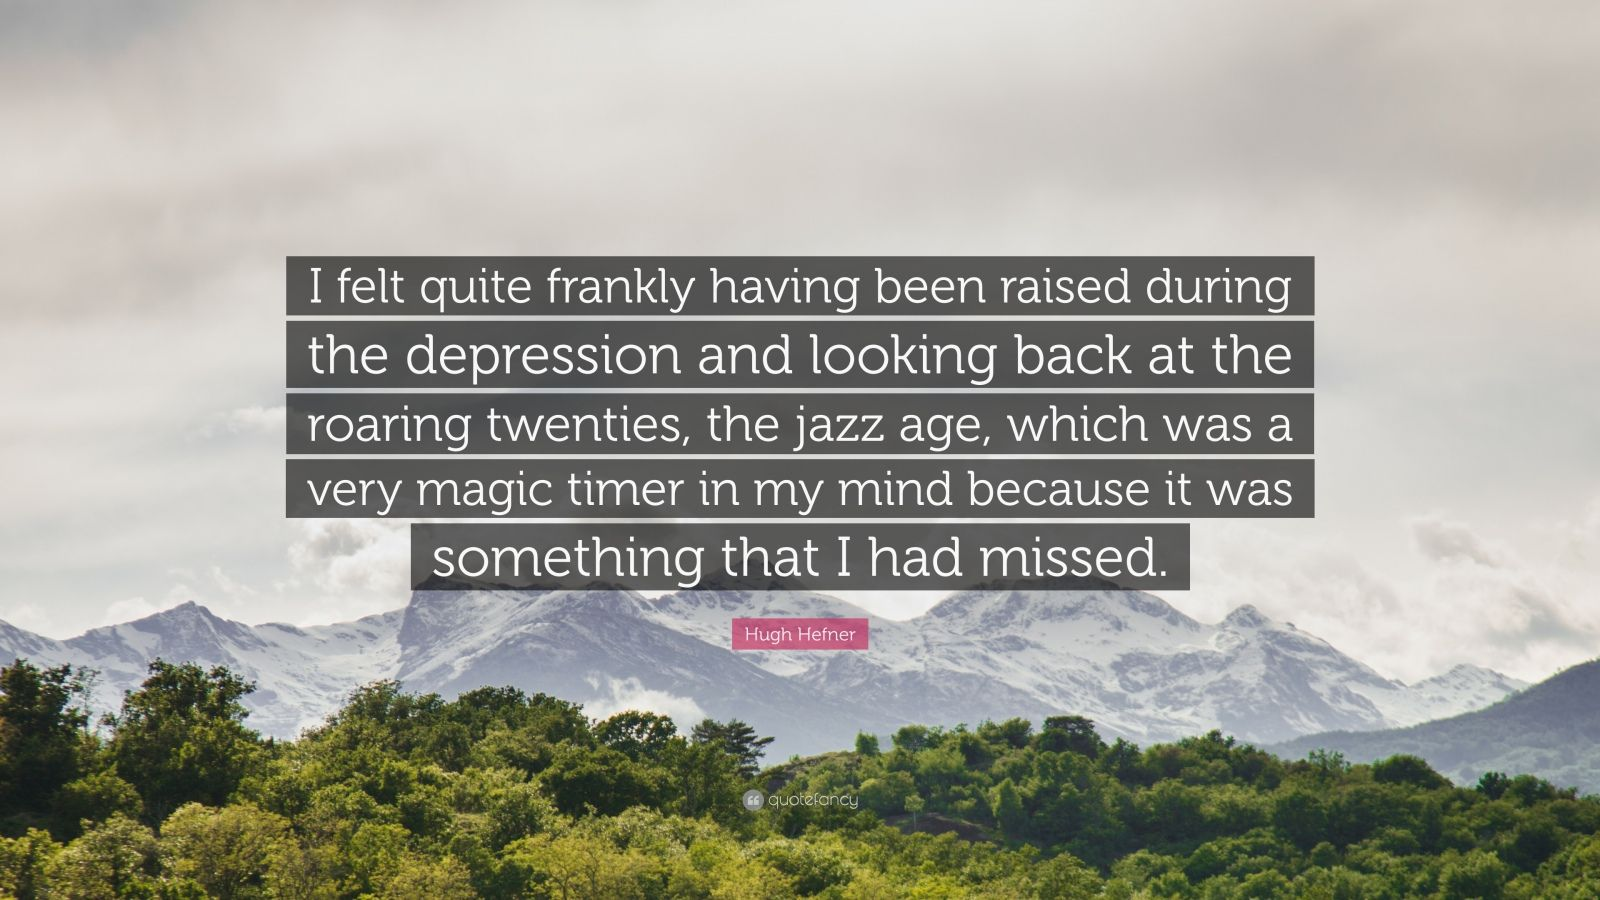 """Hugh Hefner Quote: """"I felt quite frankly having been raised during the depression and looking back at the roaring twenties, the jazz age, which was a very magic timer in my mind because it was something that I had missed."""""""